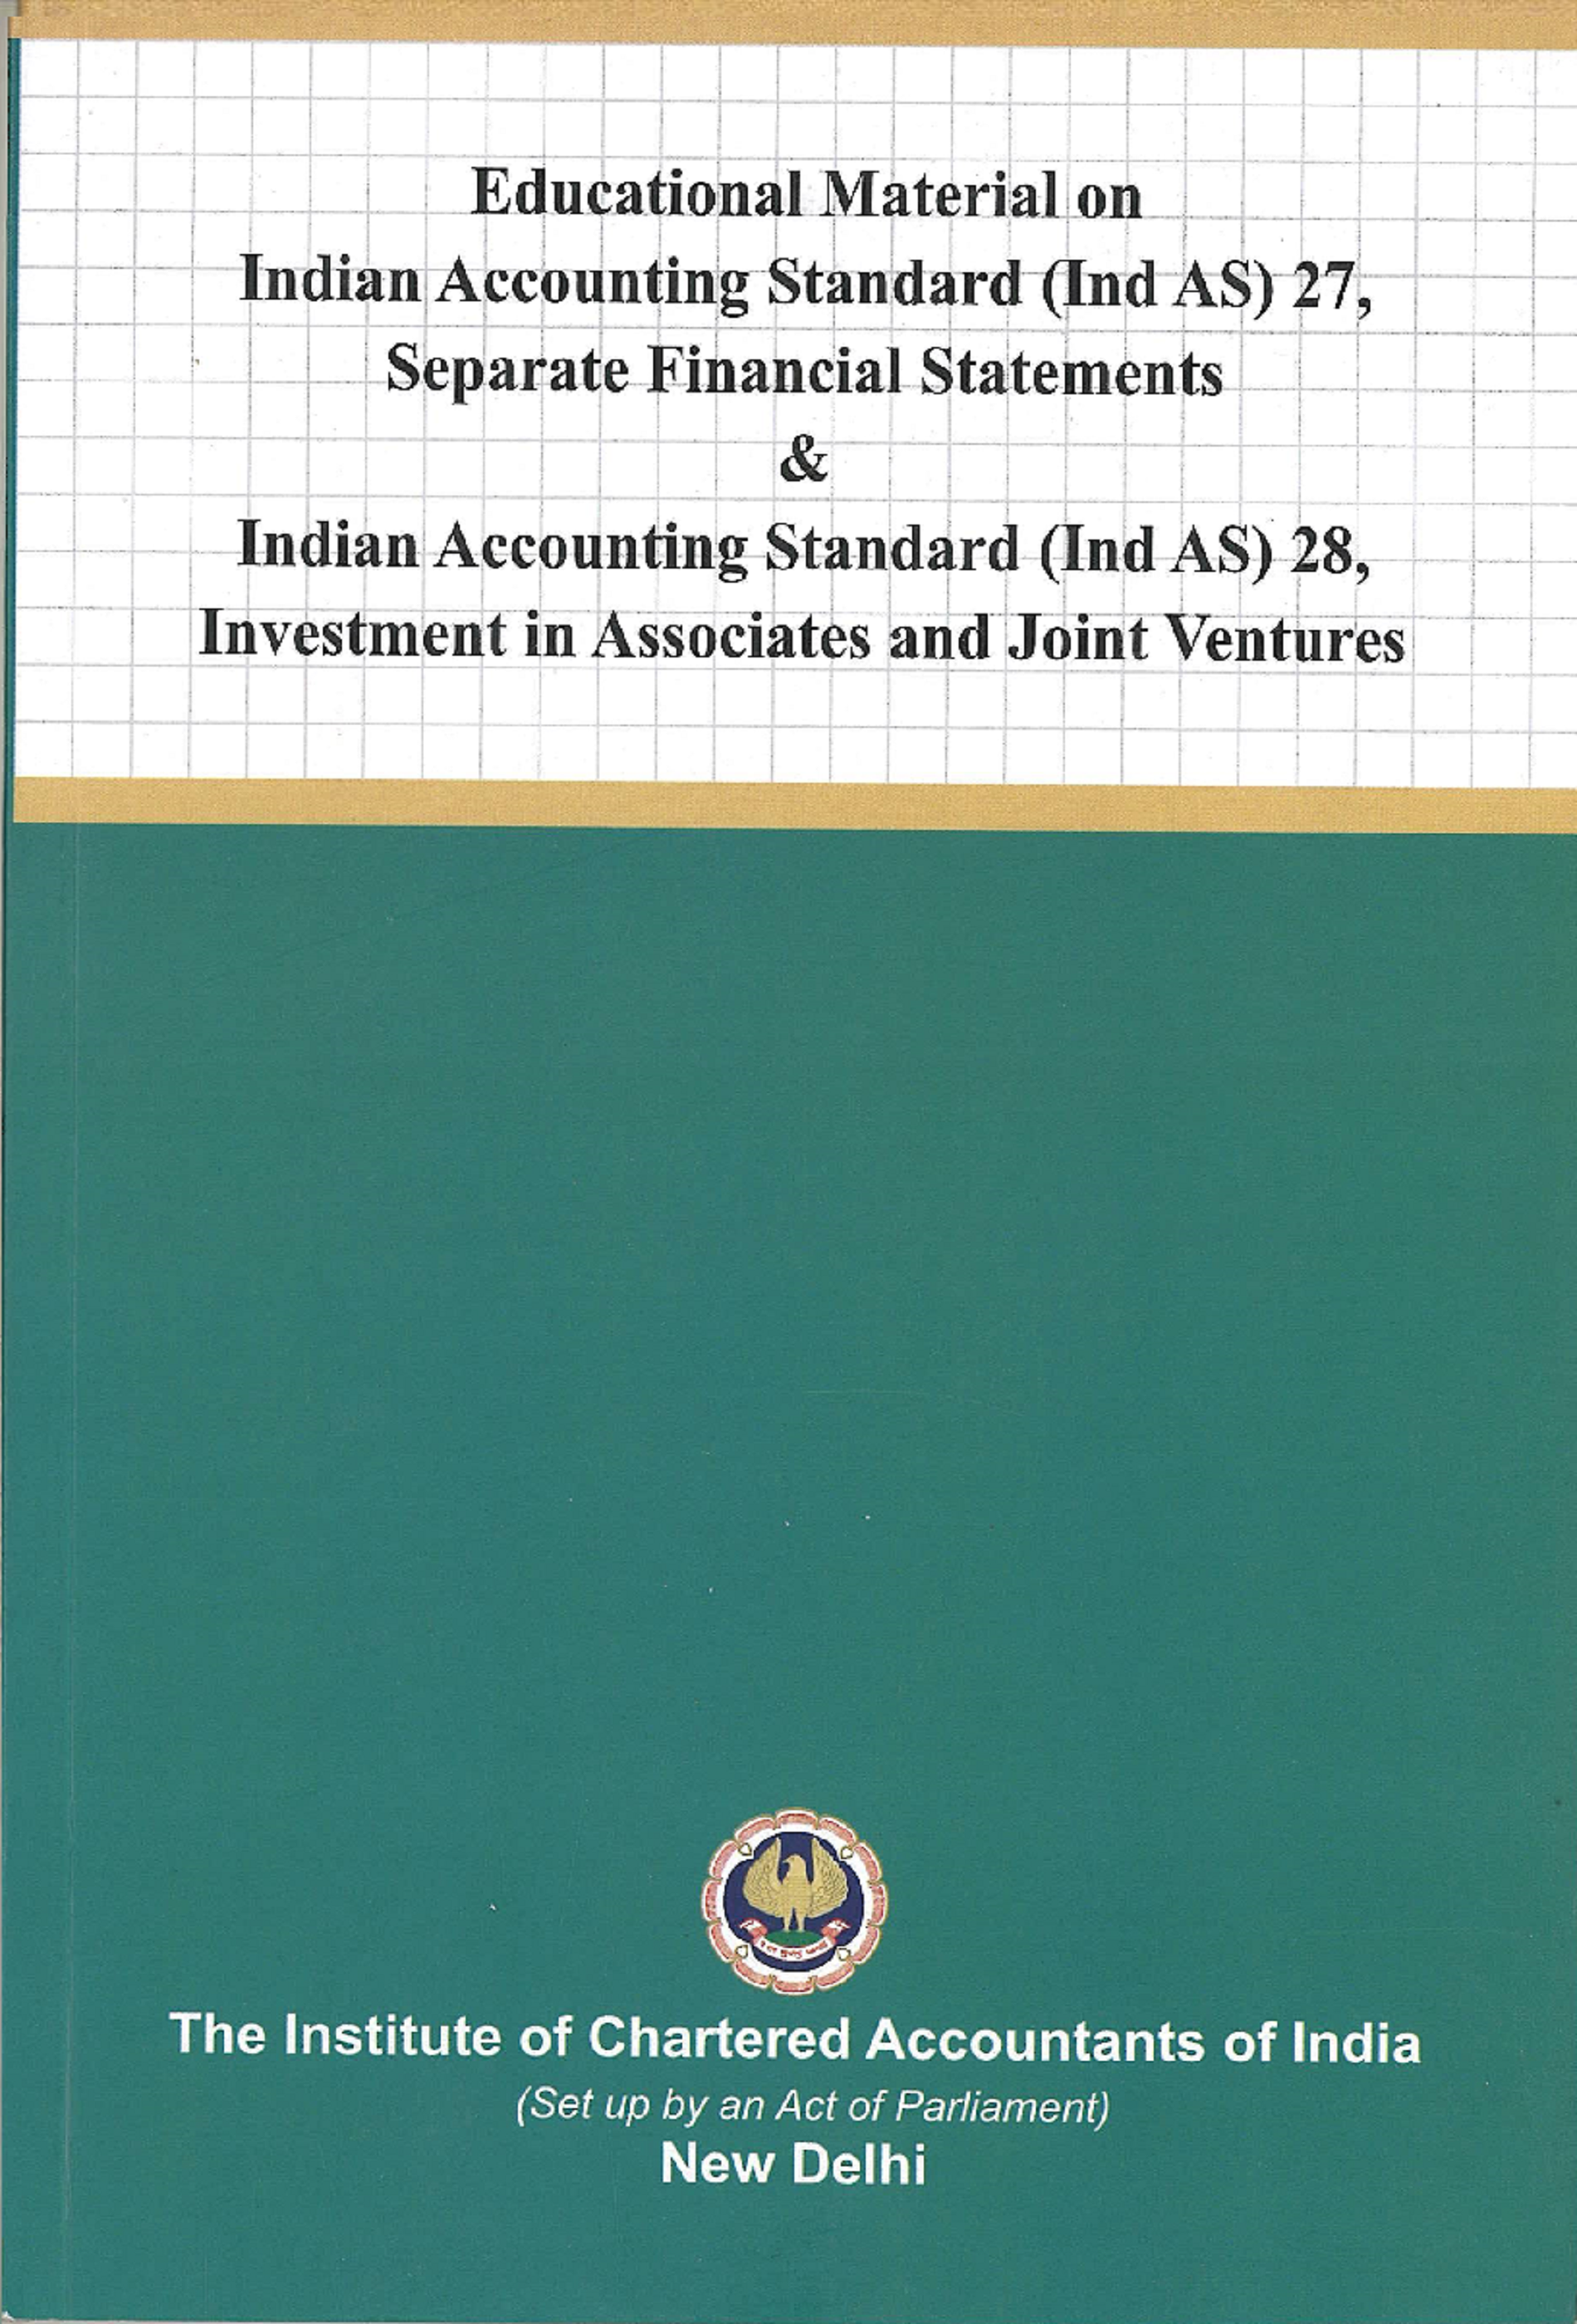 Educational Material on Indian Accounting Standards (Ind AS) 27, Separate Financial Statements & Educational Material on Indian Accounting Standards (Ind AS) 28, Investment in Associates and Joint Ventures (July, 2018)